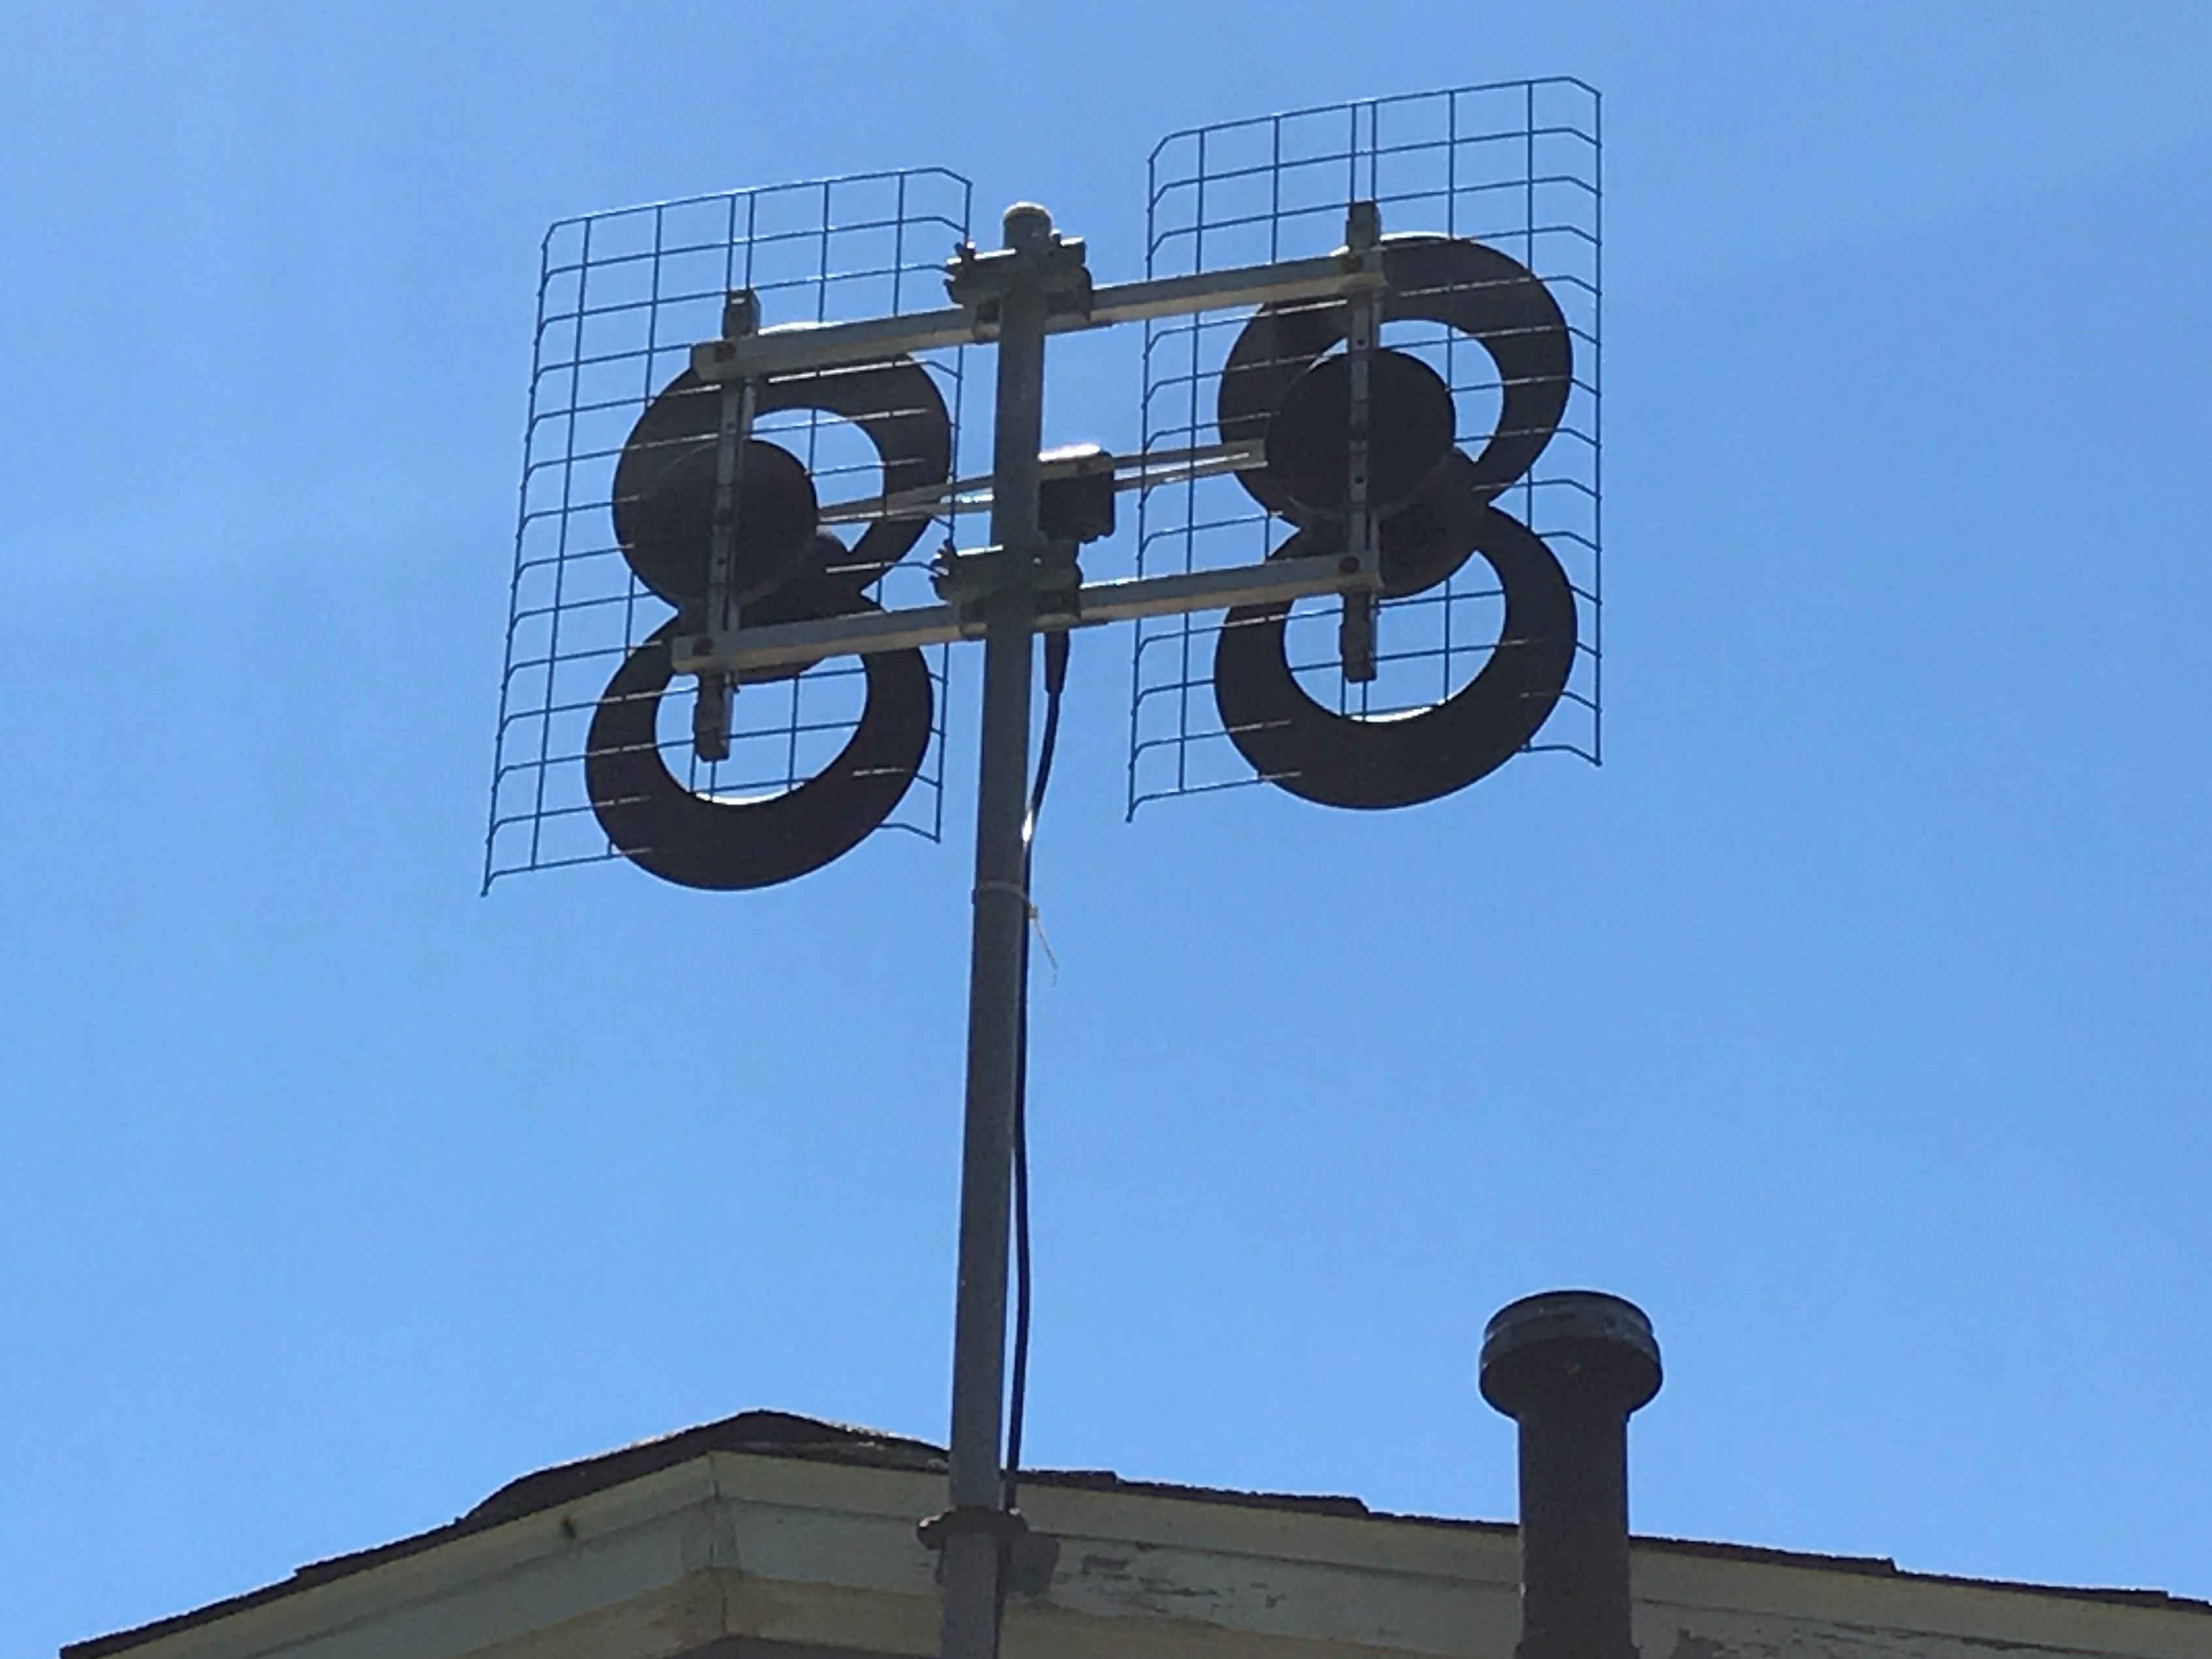 Different Ways To Mount An Hd Antenna For The Home Over